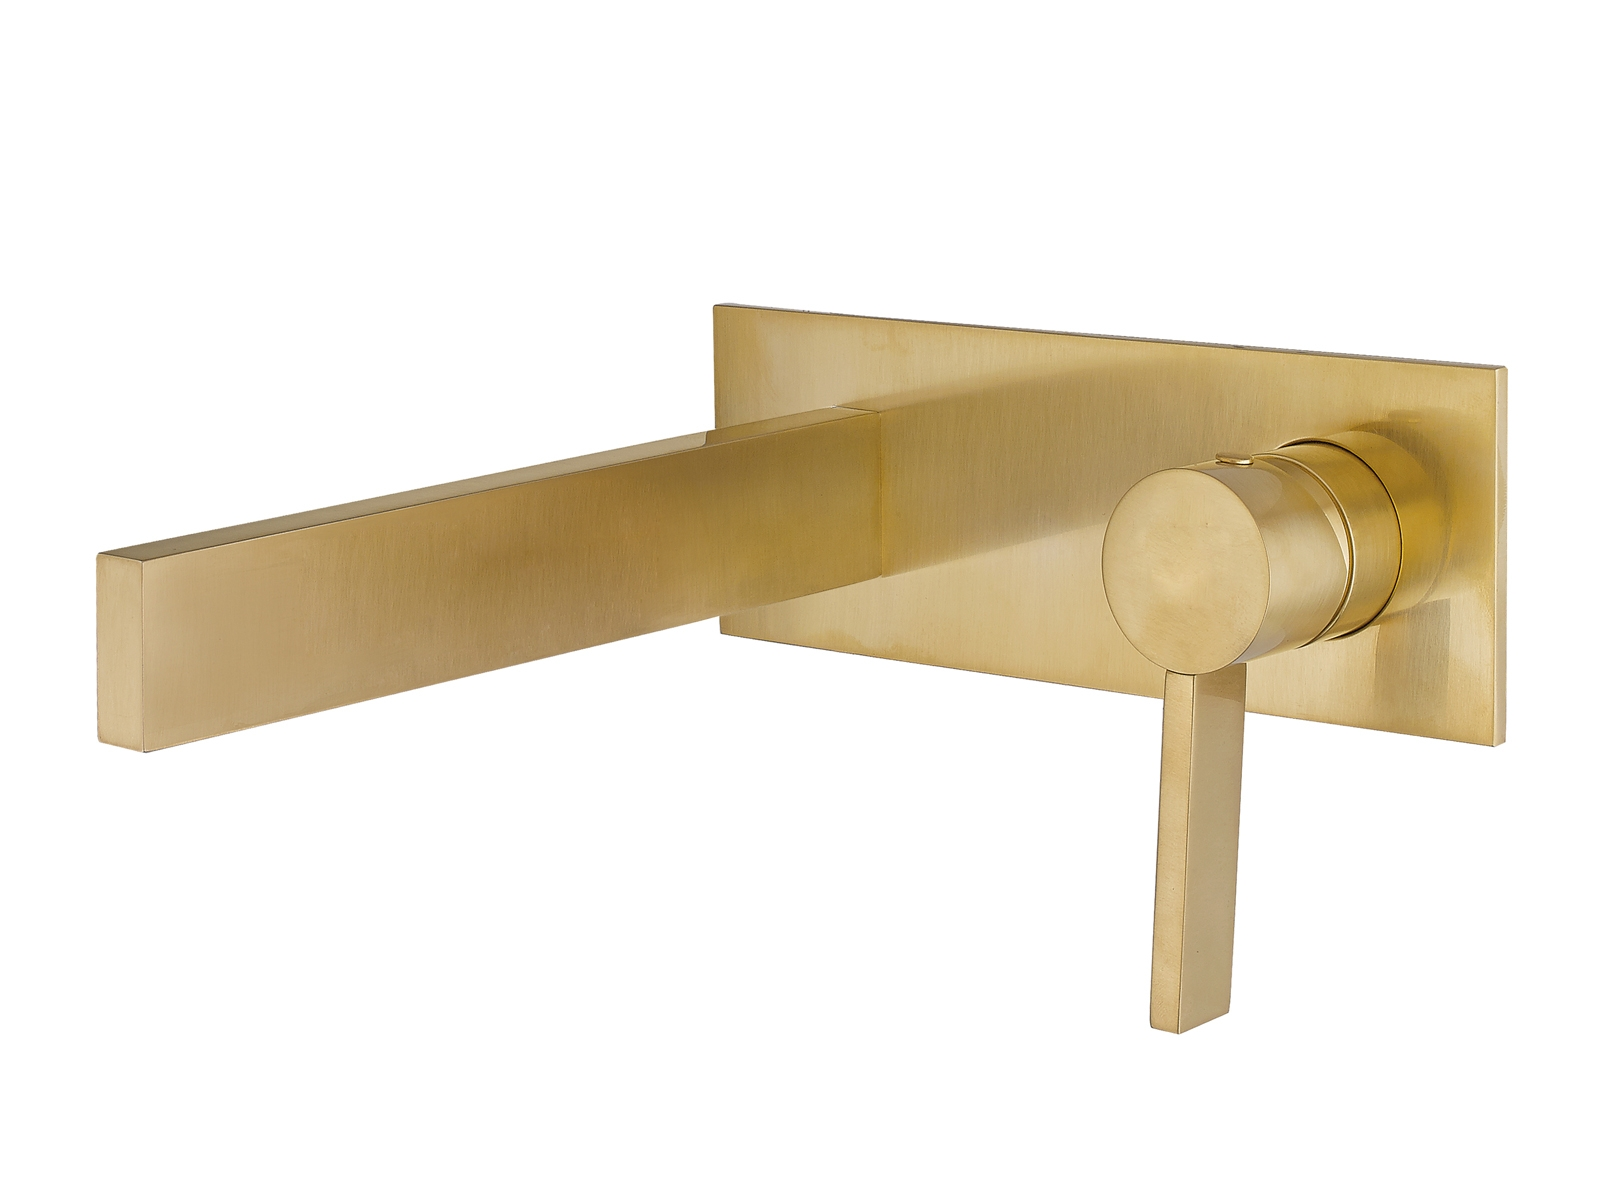 Ideas, brushed gold bath faucets brushed gold bath faucets design your brushed gold bathroom faucet designs ideas free 1600 x 1203  .